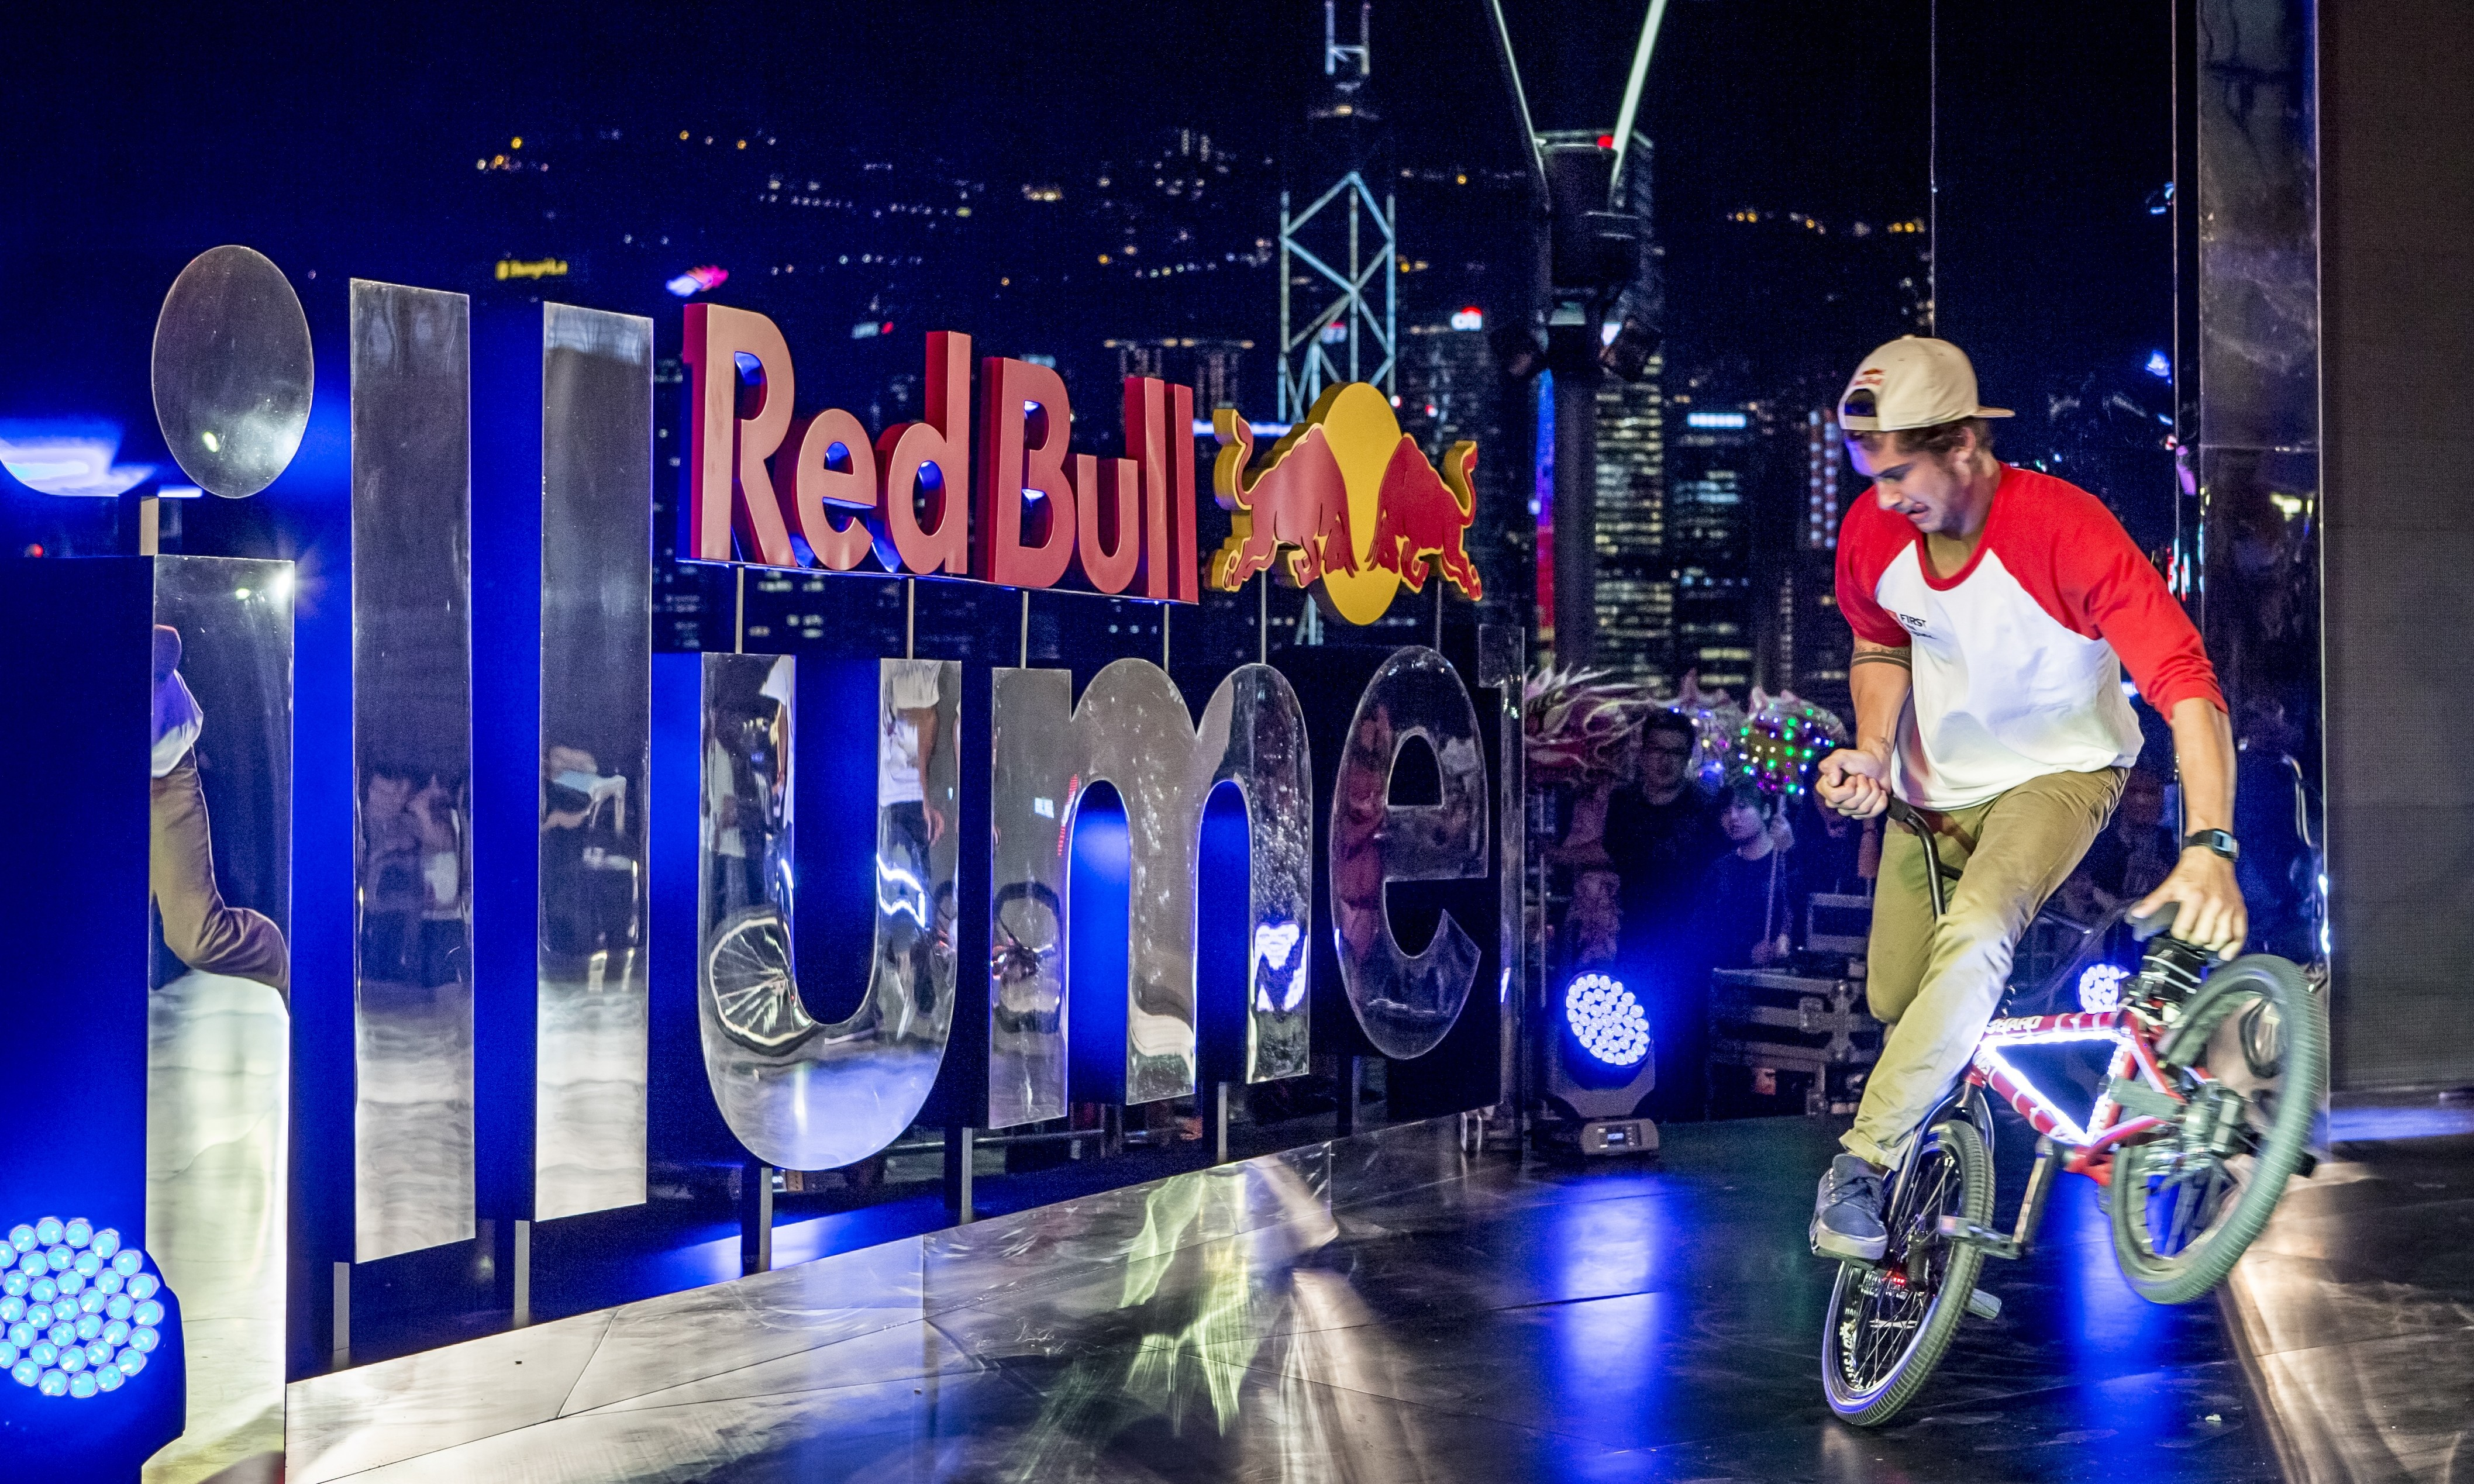 Red Bull gets into adventure sports [GALLERY]   Marketing Interactive